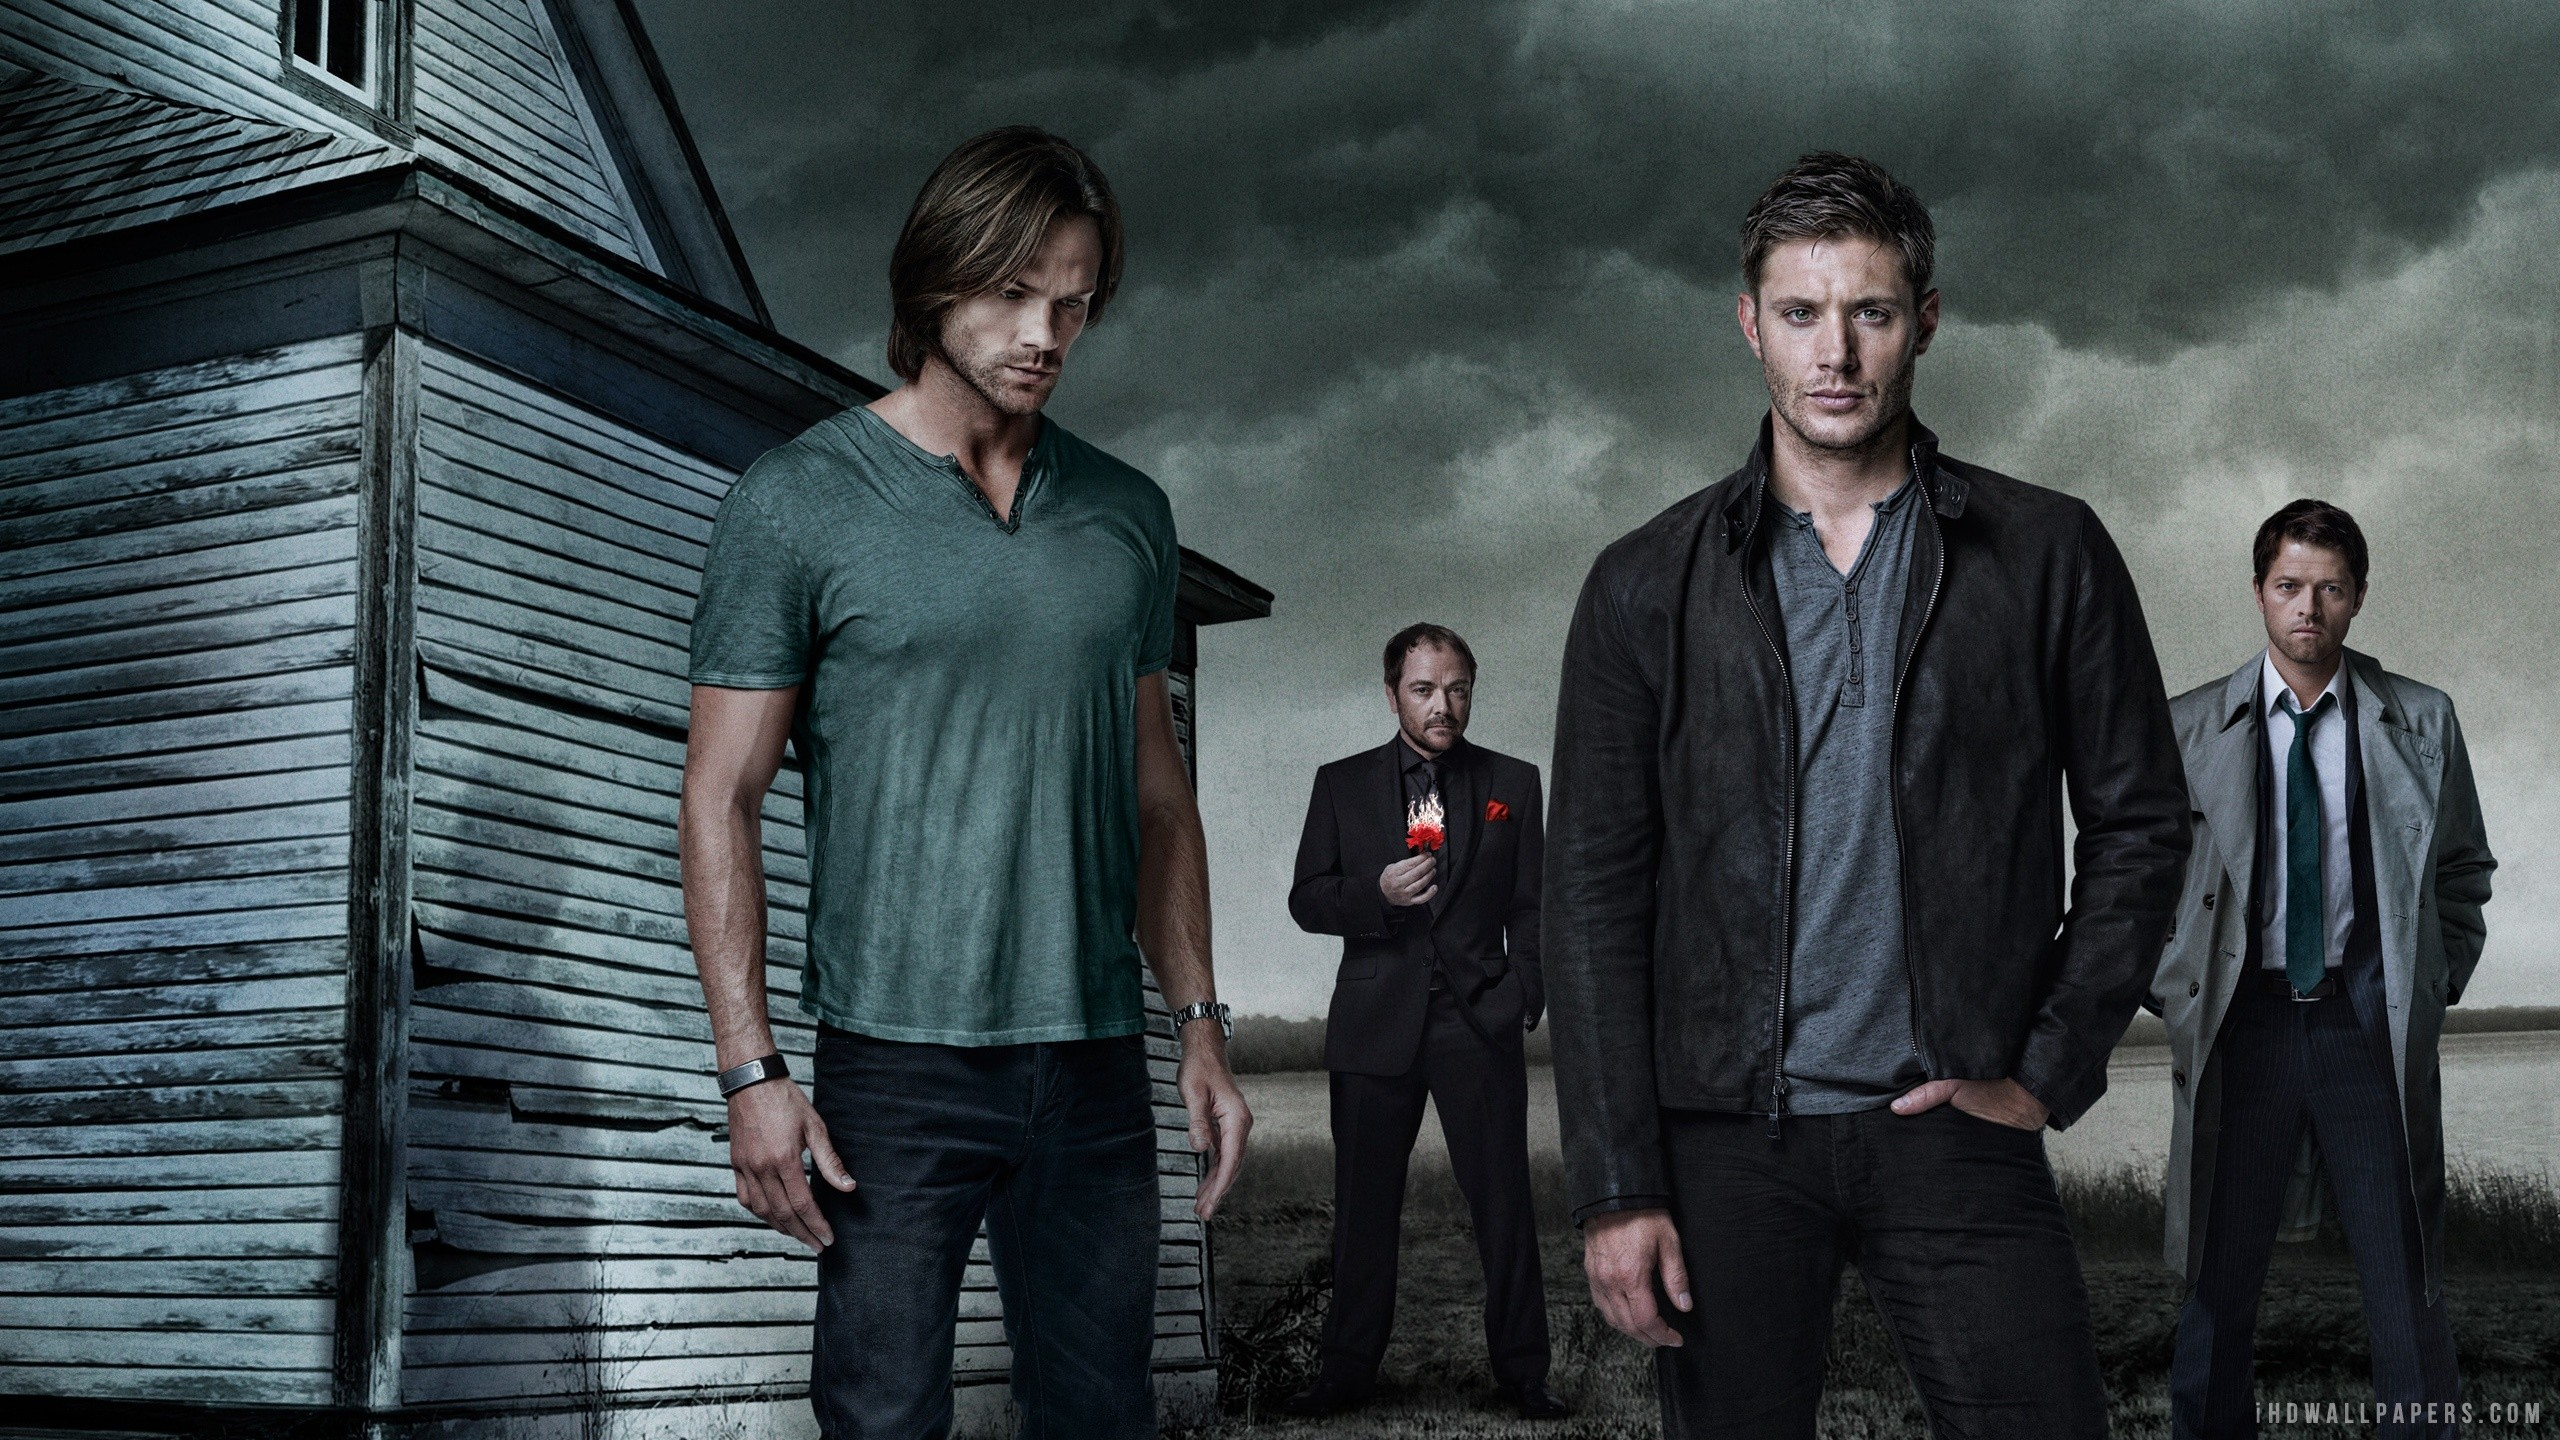 Supernatural Wallpaper</b>, PC, Laptop